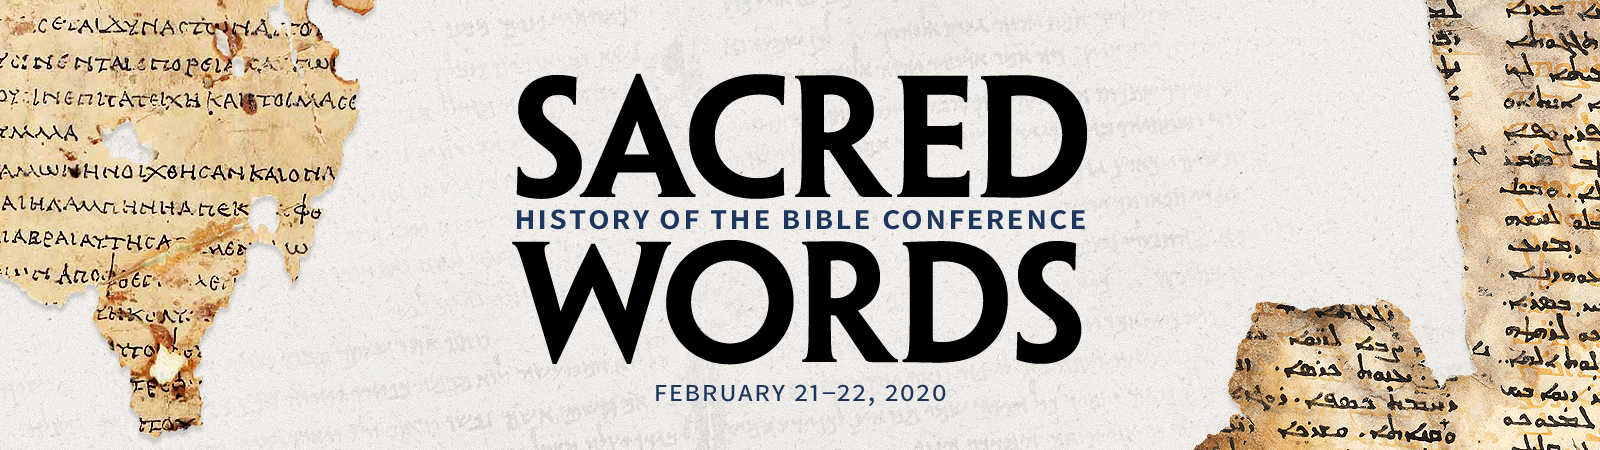 Sacred Words History of the Bible Conference: February 21-22, 2020